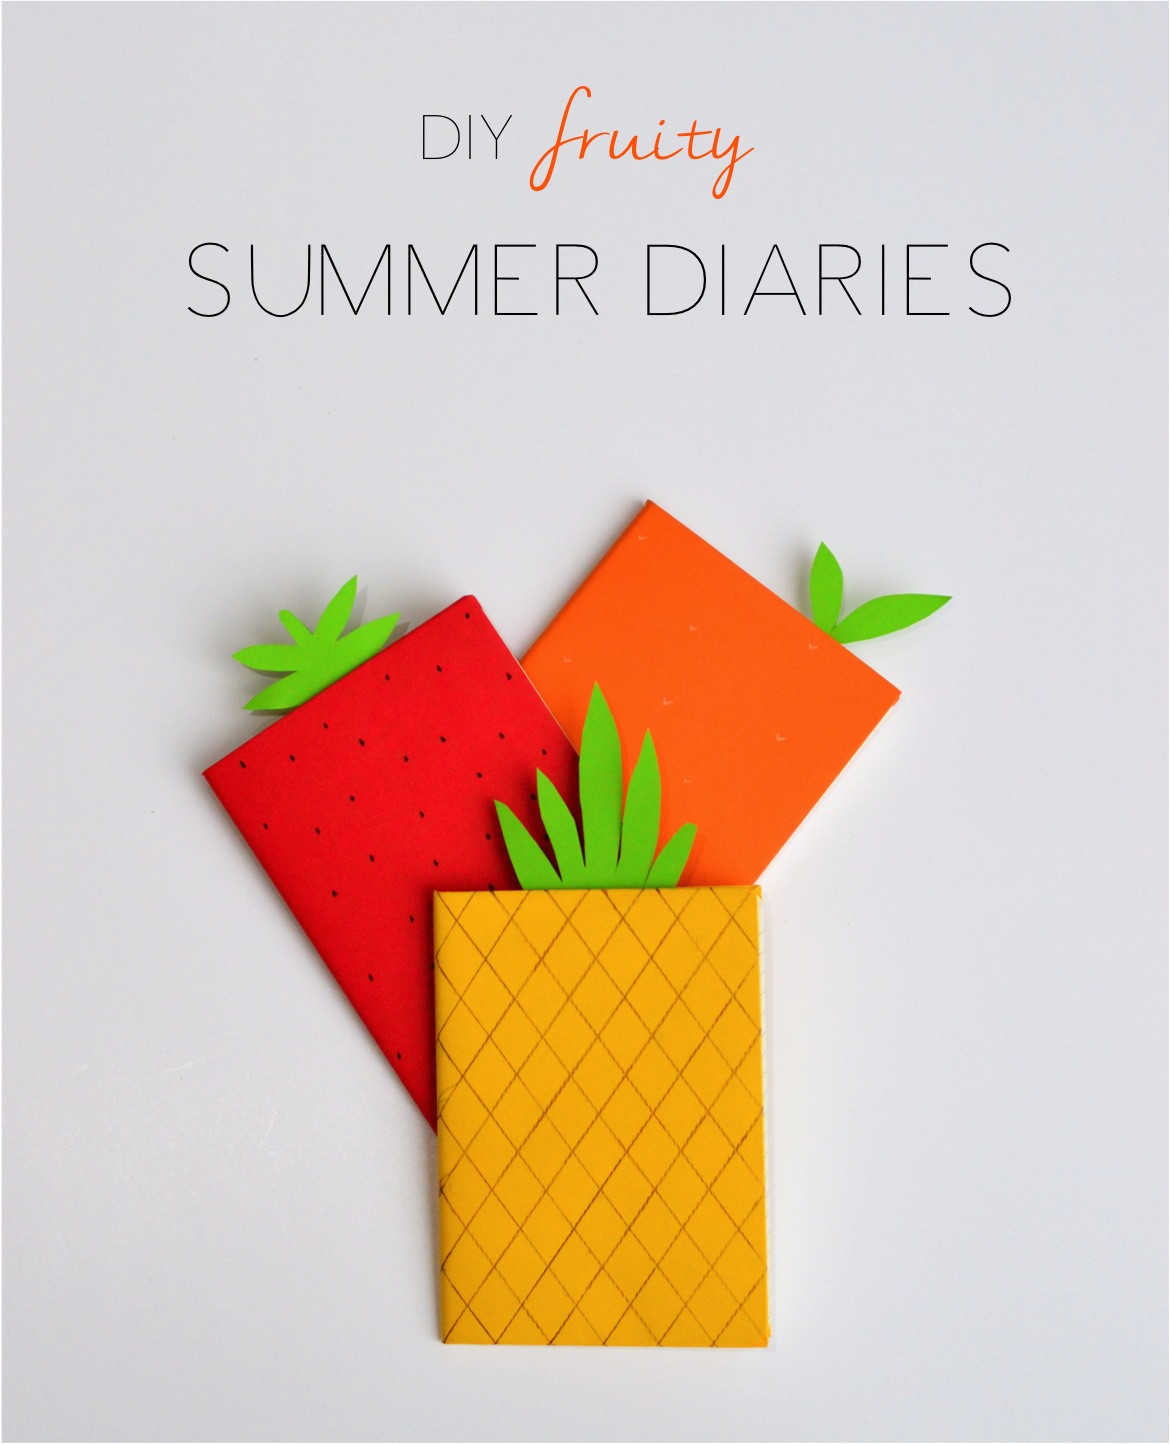 Fruit Crafts For Toddlers  DIY fruity Summer diary